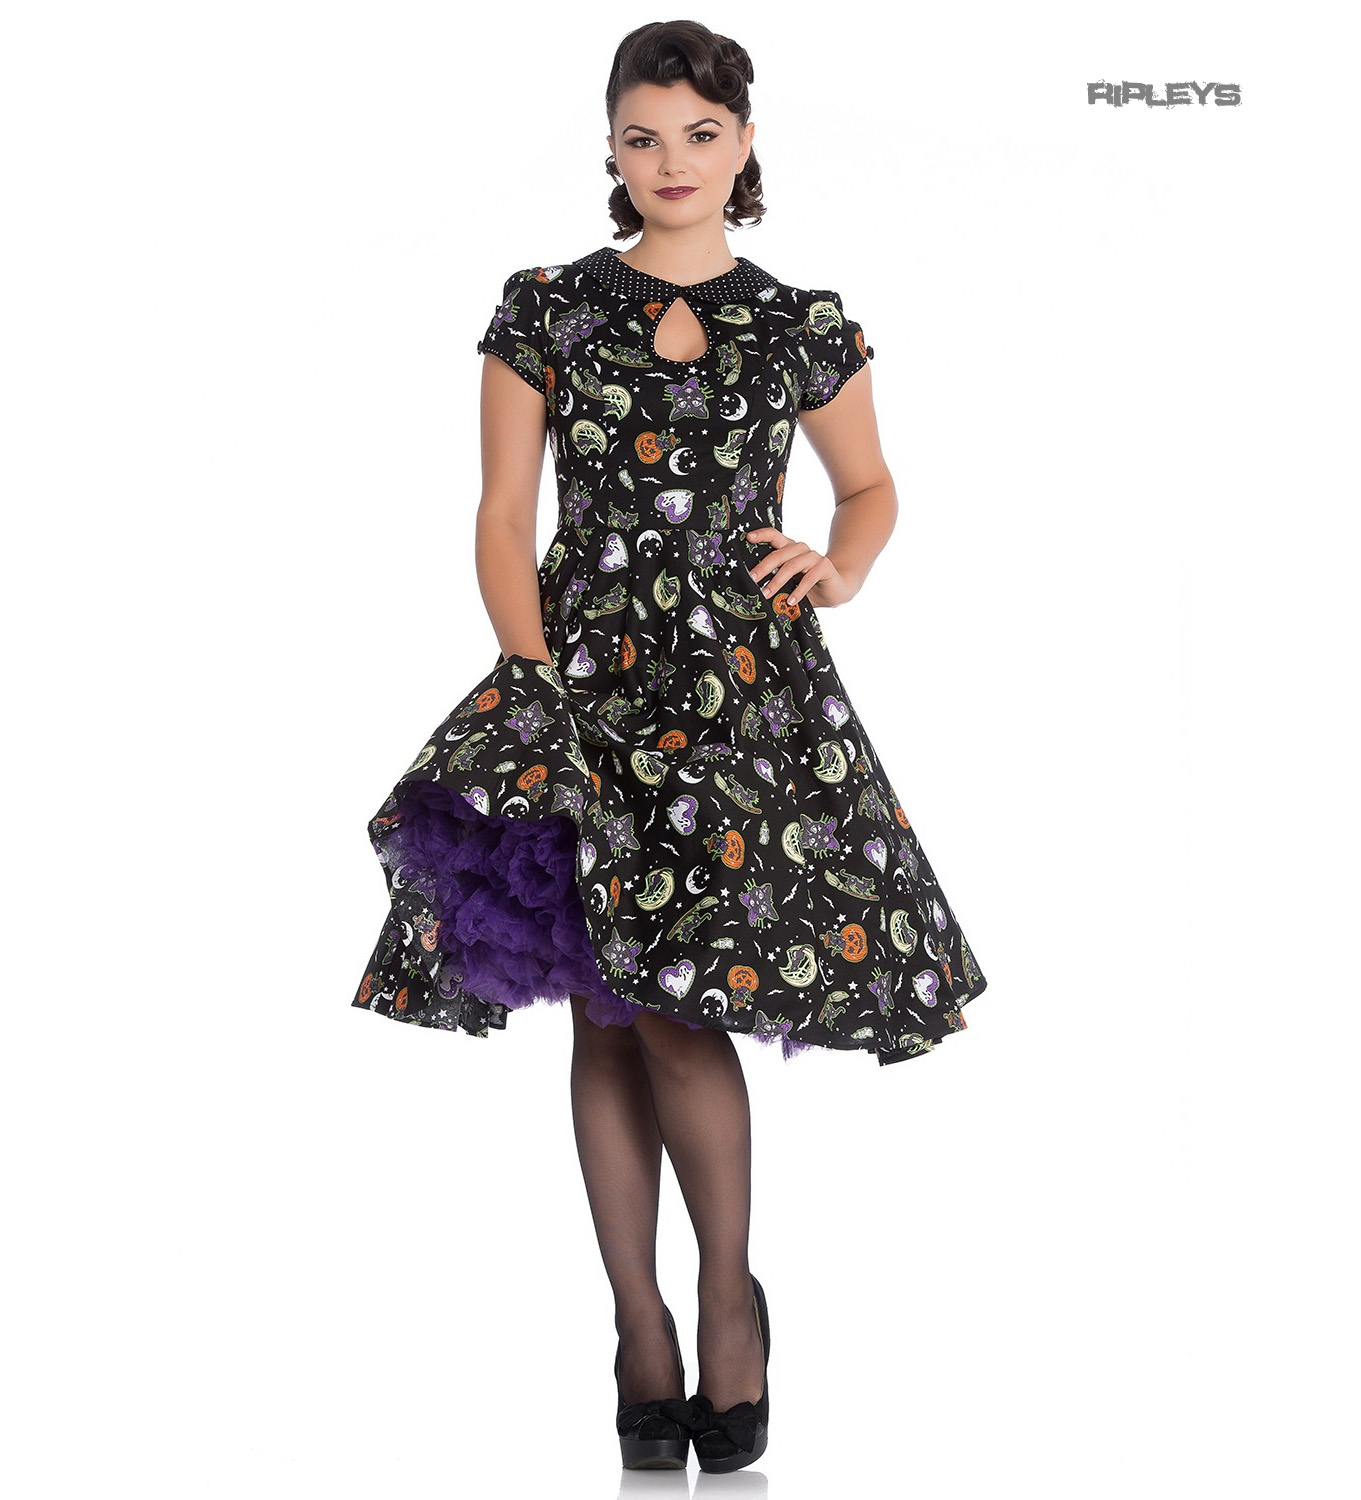 Hell-Bunny-50s-Black-Pin-Up-Dress-Horror-Witchy-SALEM-Halloween-All-Sizes thumbnail 4